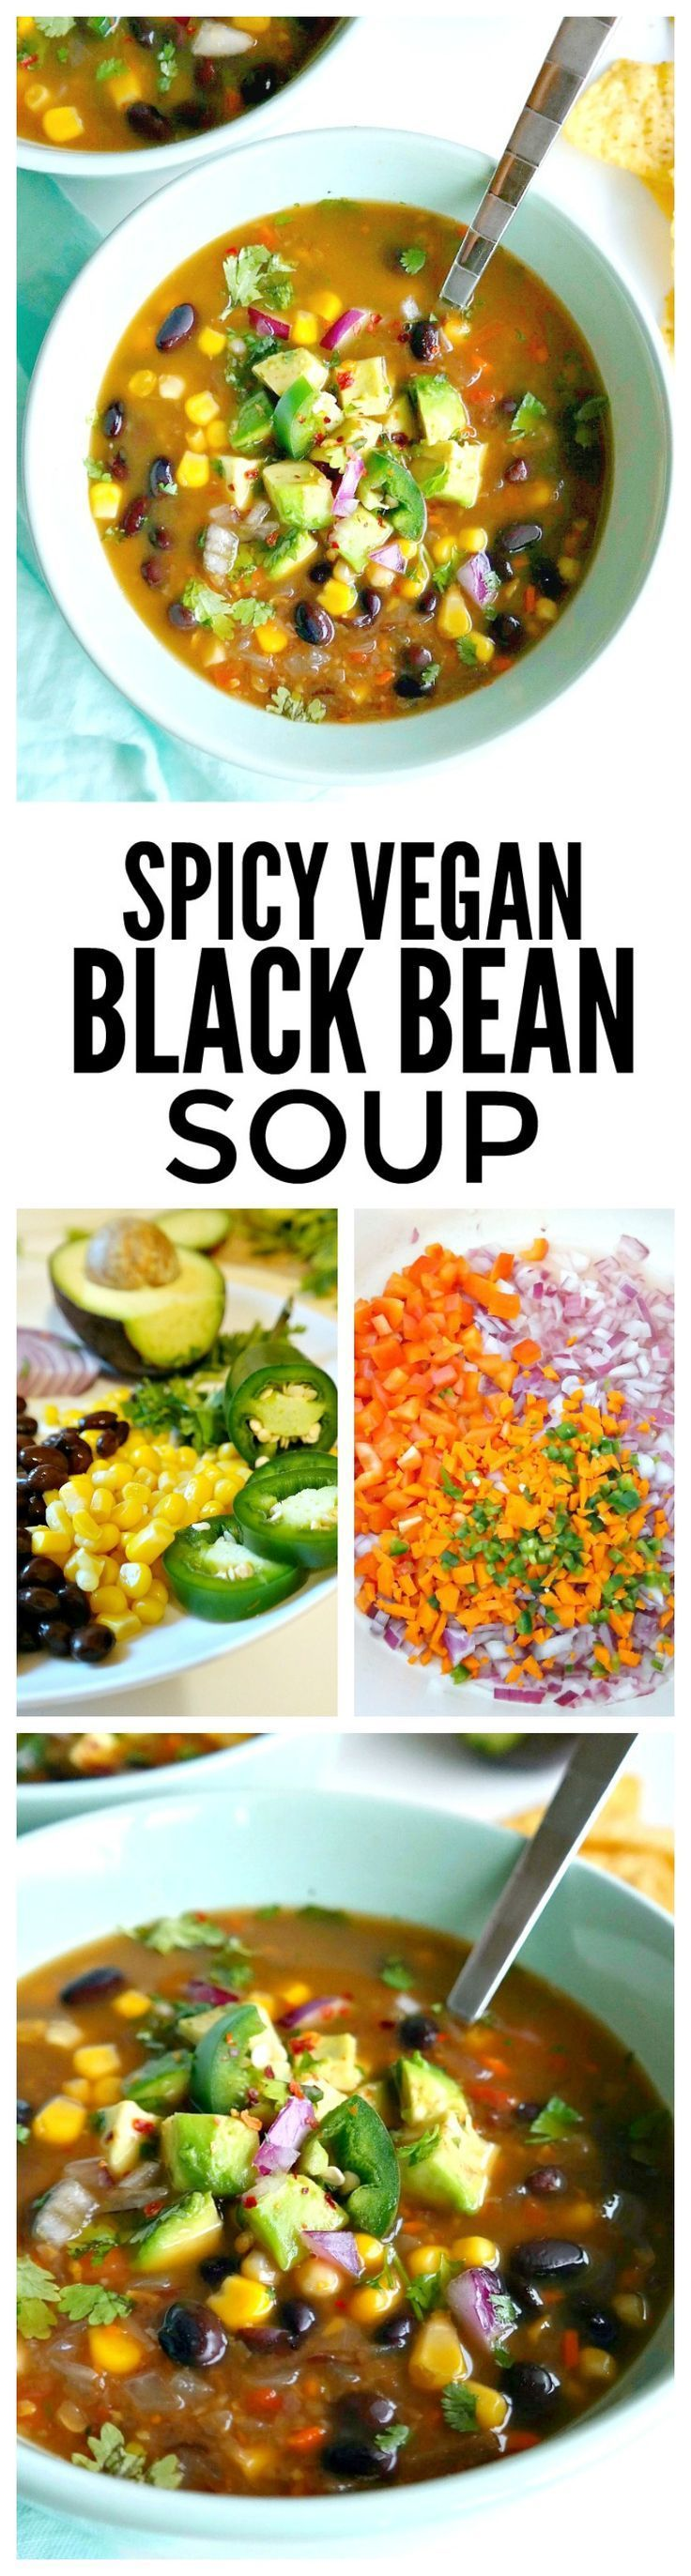 Spicy Vegan Black Bean Soup. Healthy, delicious, simple, packed with extra veggie goodness & ready in under 1 hour. This oil-free recipe is bursting with flavor and leaves plenty of leftovers. *** Made as directed (but used a whole lime), one batch. Made more than enough for left overs. Leave it on the chunkier side, add more peppers, w/ extra lime wedges on the side, extra cilantro, avocado, & HM baked corn chips***)